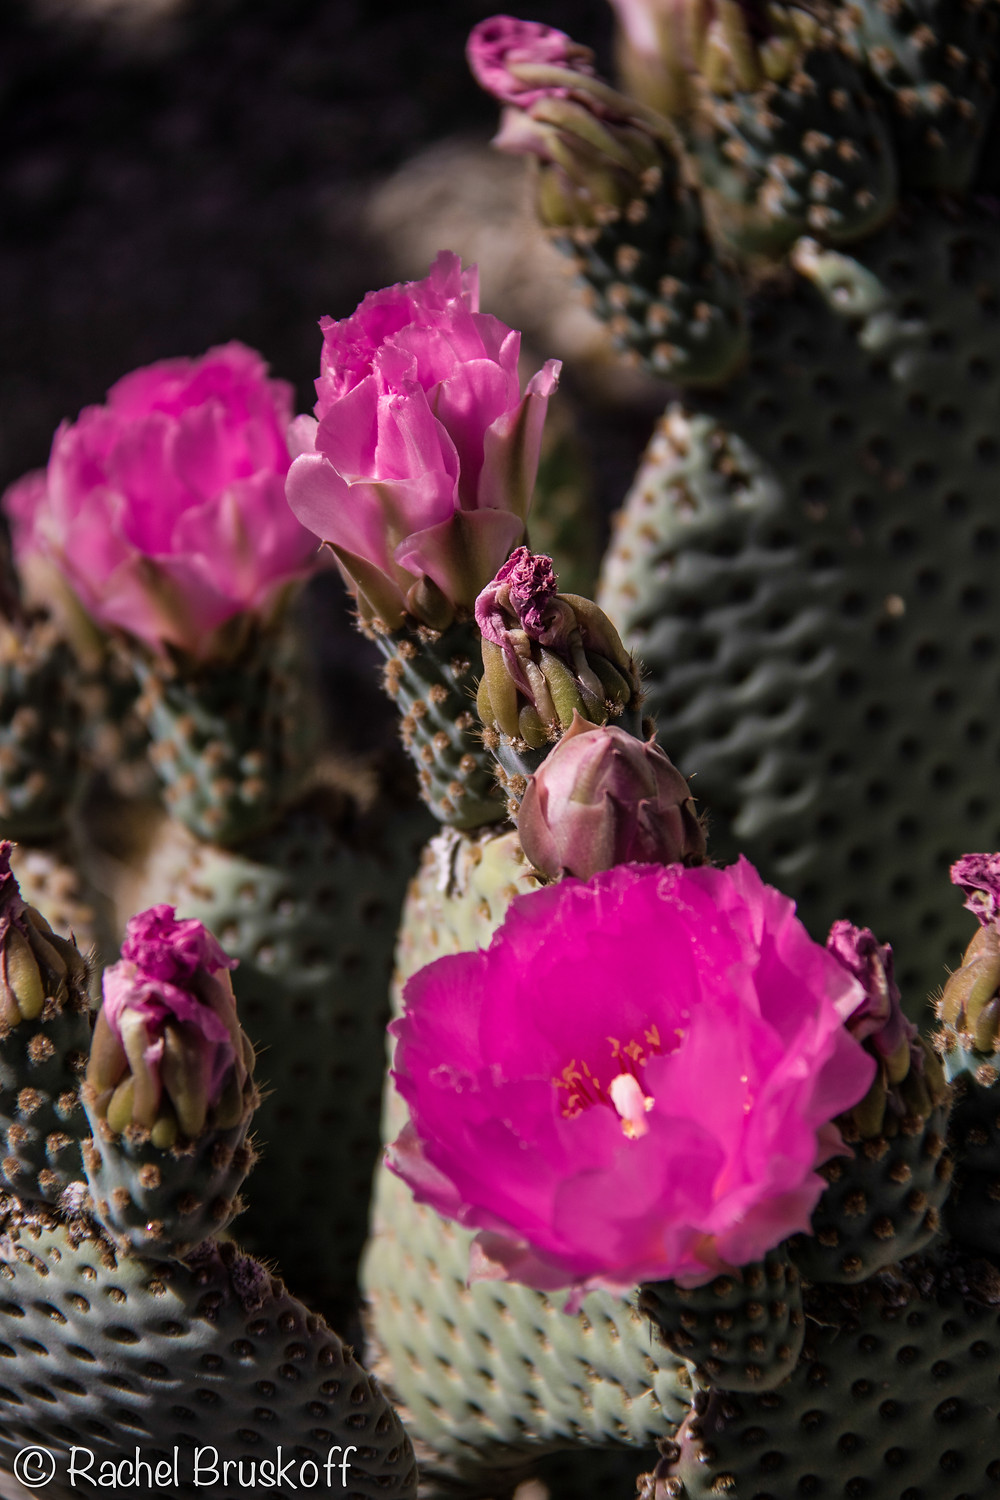 The beaver tail cacti had bright pink blossoms.